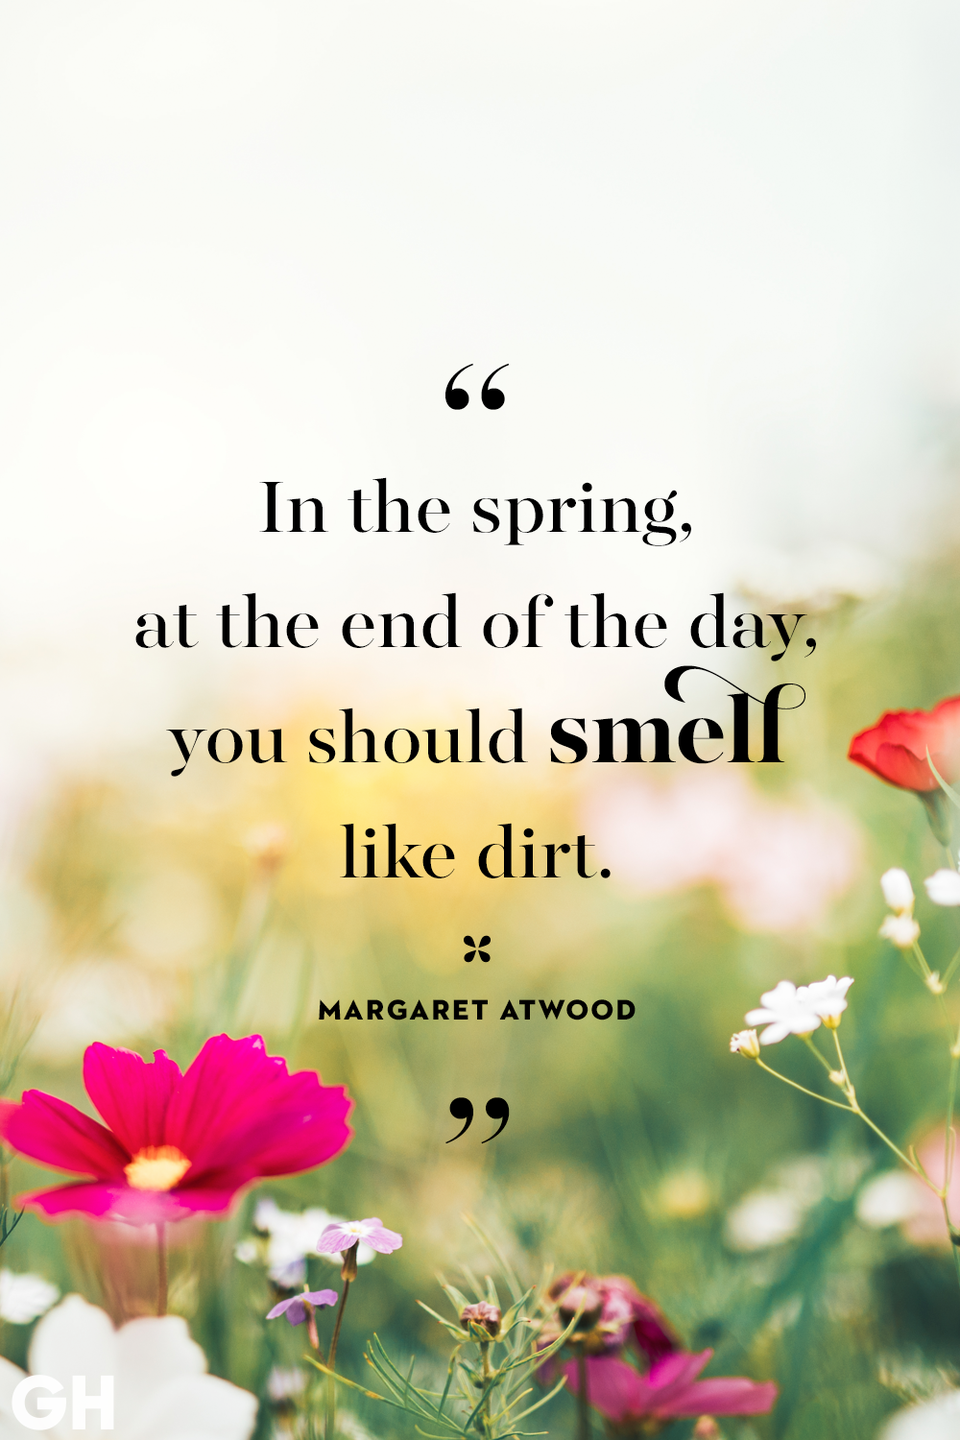 <p>In the spring, at the end of the day, you should smell like dirt.</p>